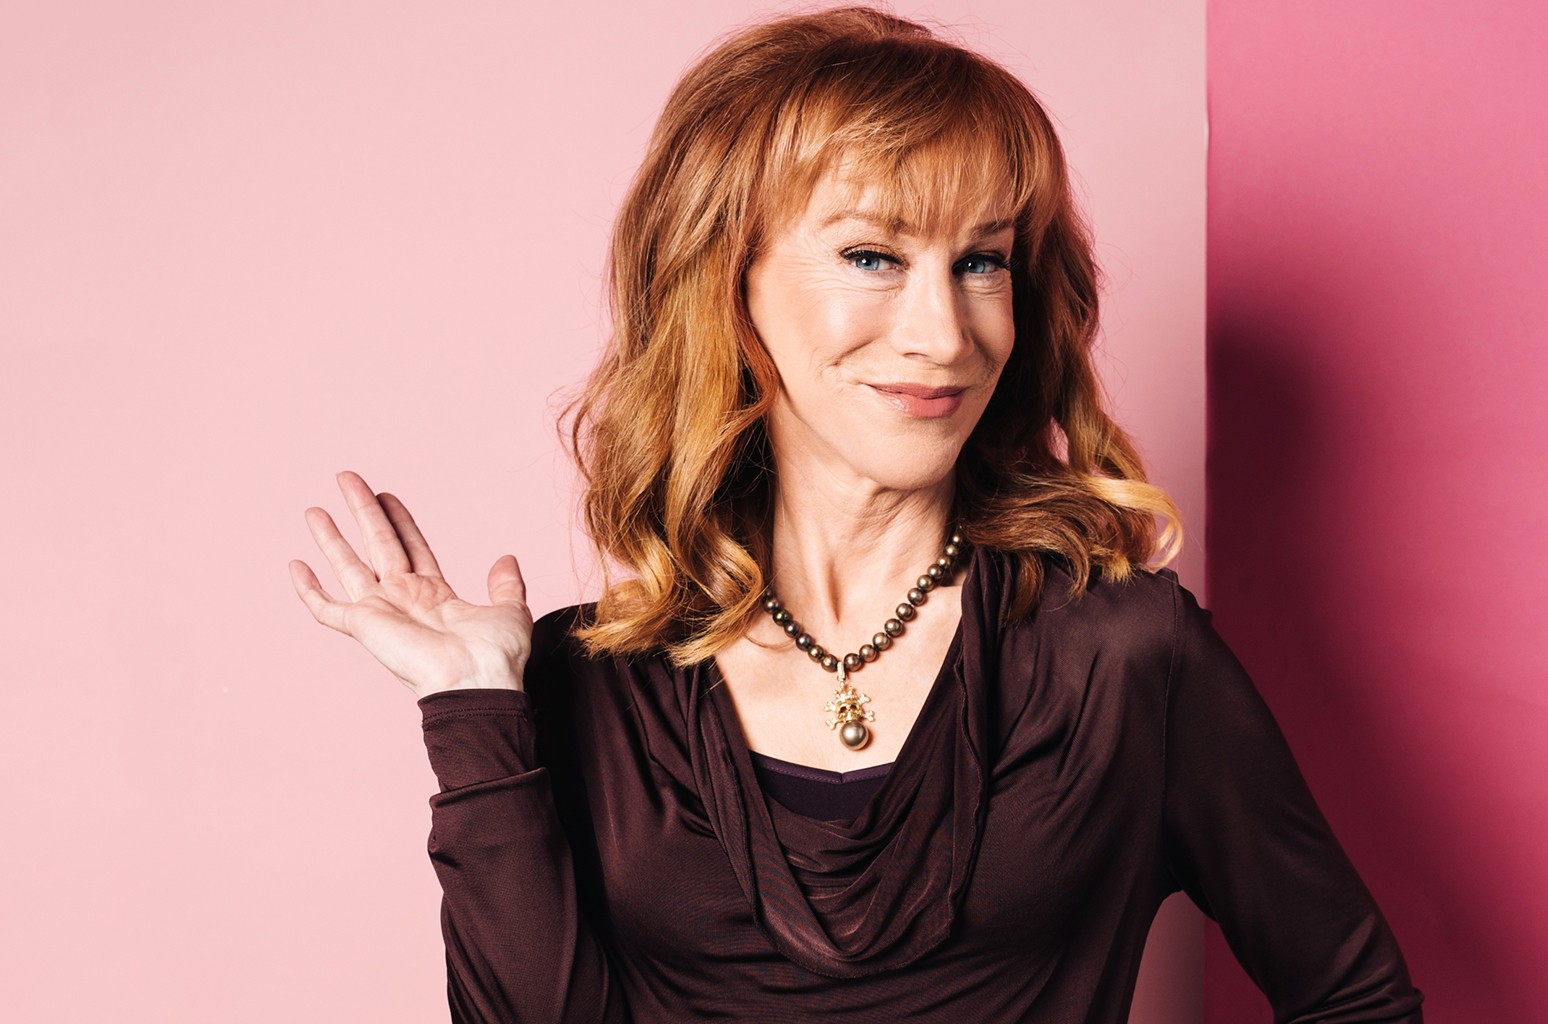 Kathy Griffin photographed at The Wrap studios on March 7, 2017 in Los Angeles.